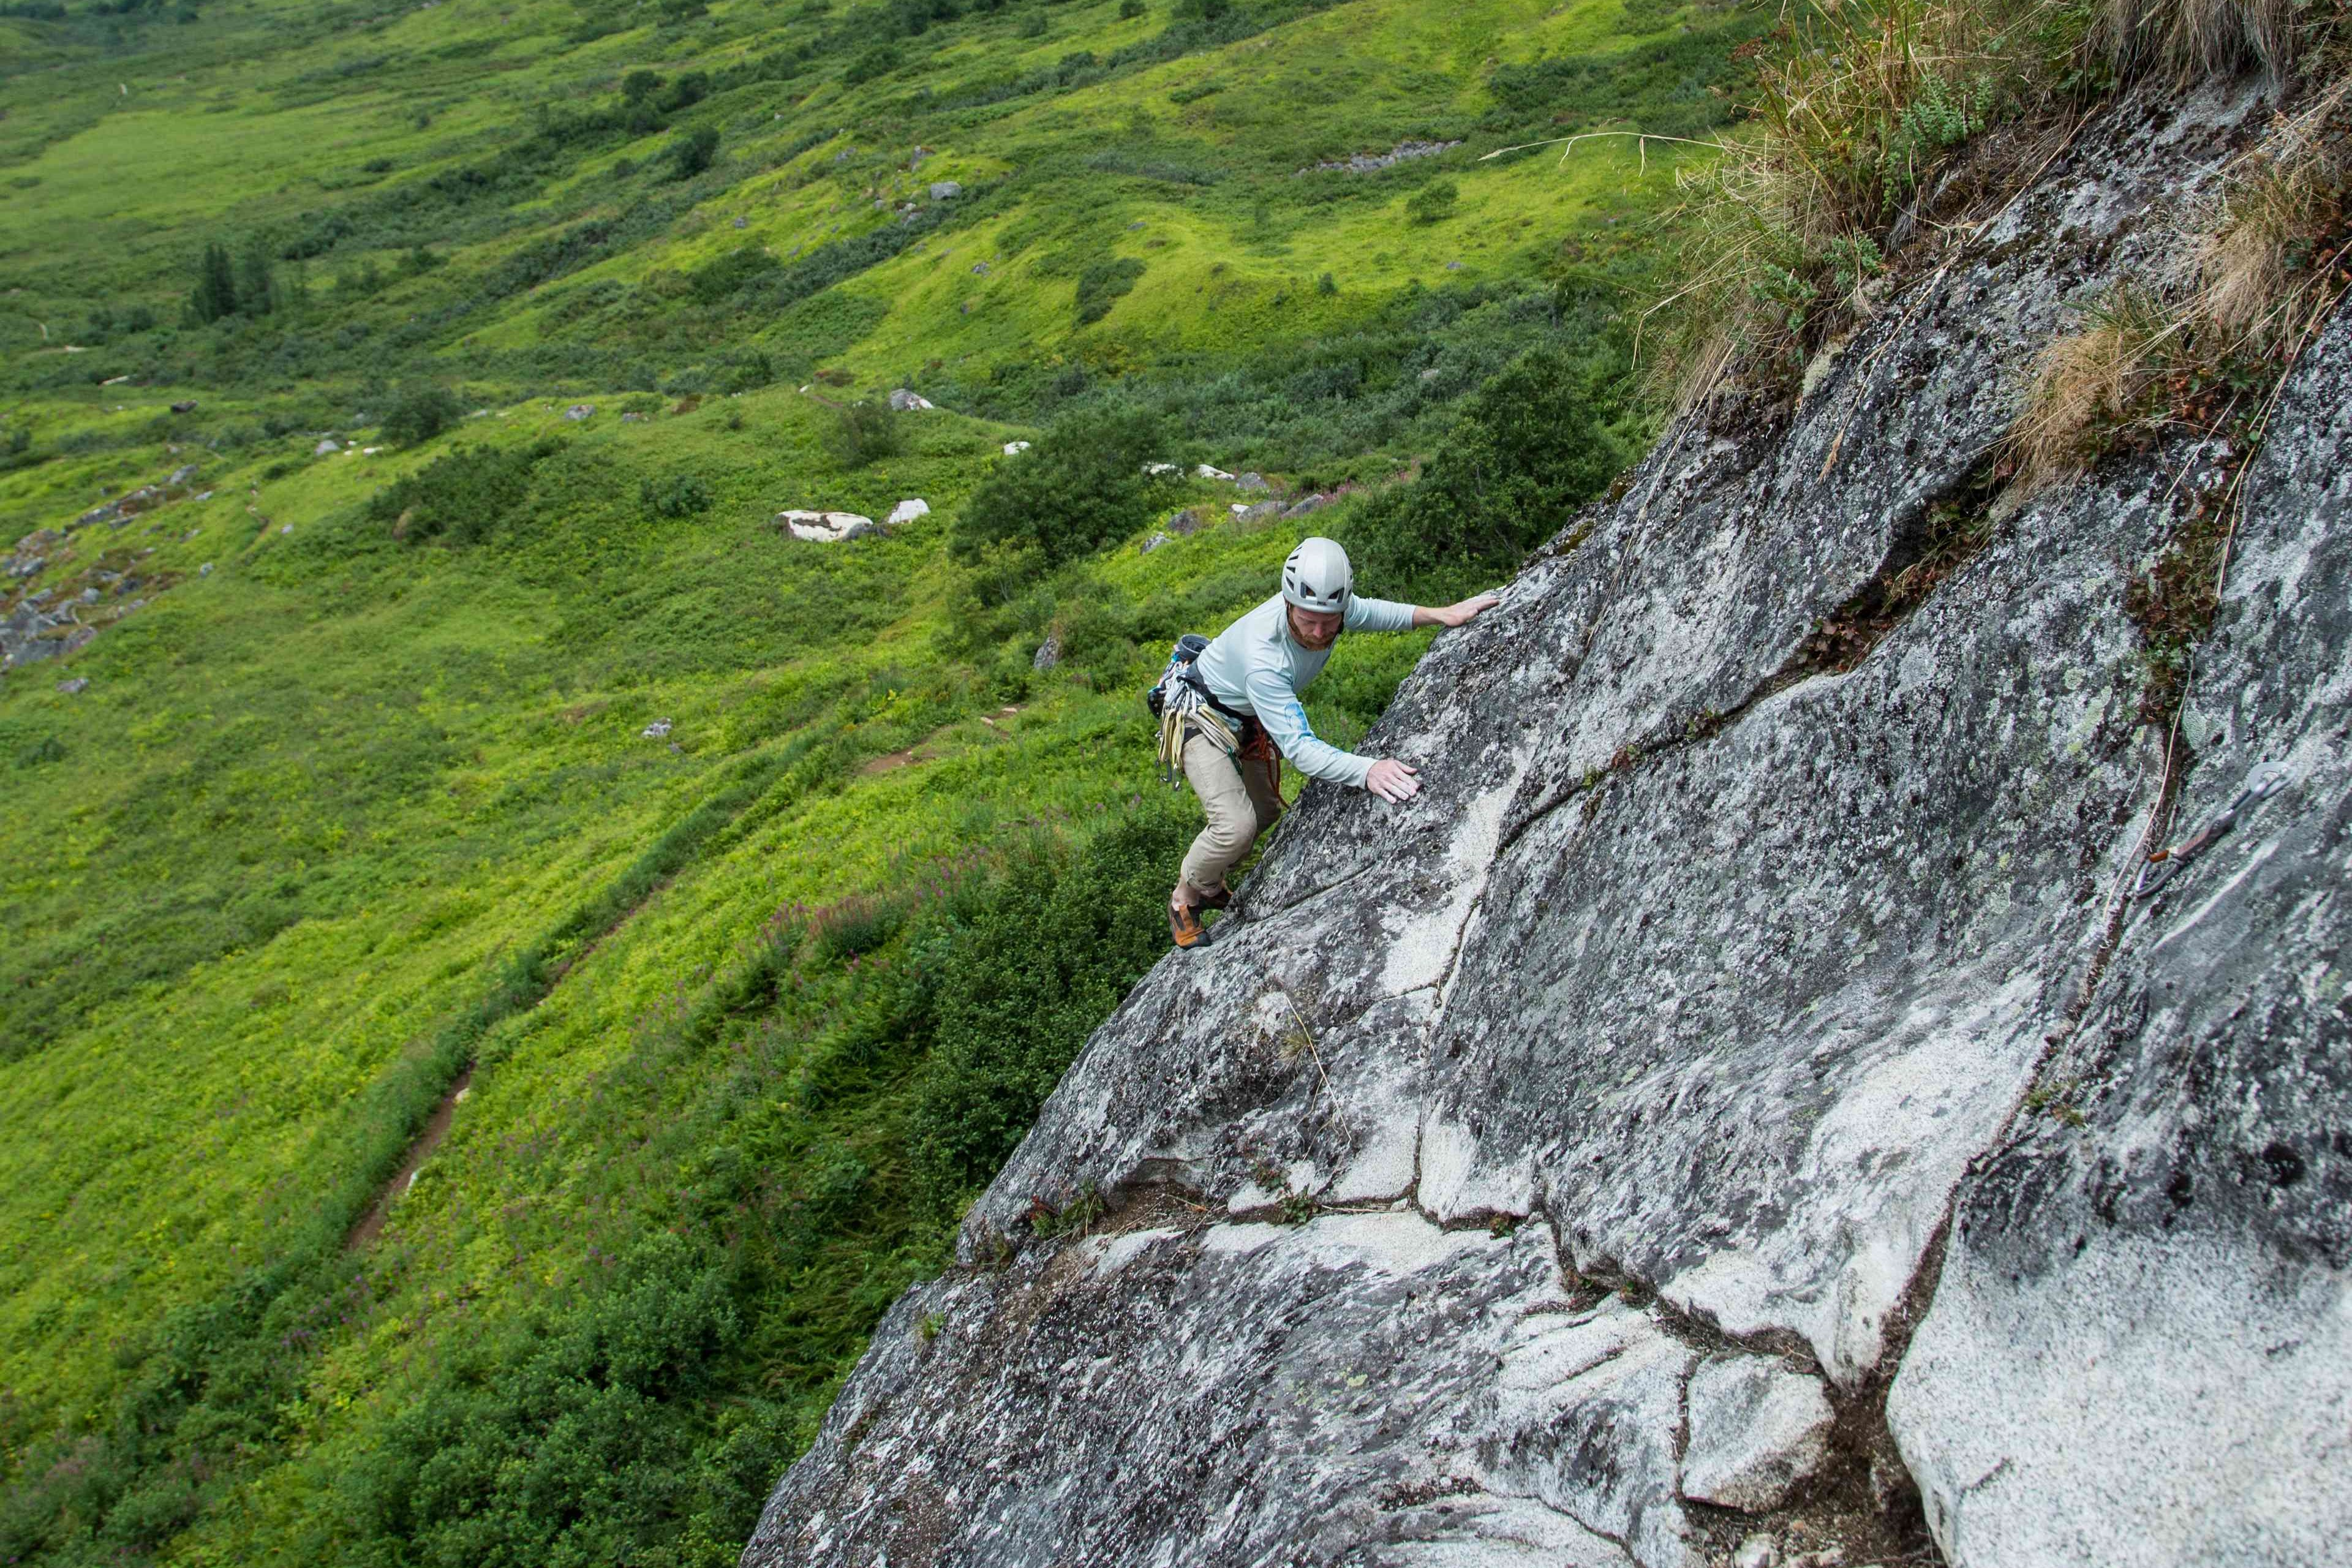 Eyeing up the next move on a slab in Hatcher Pass